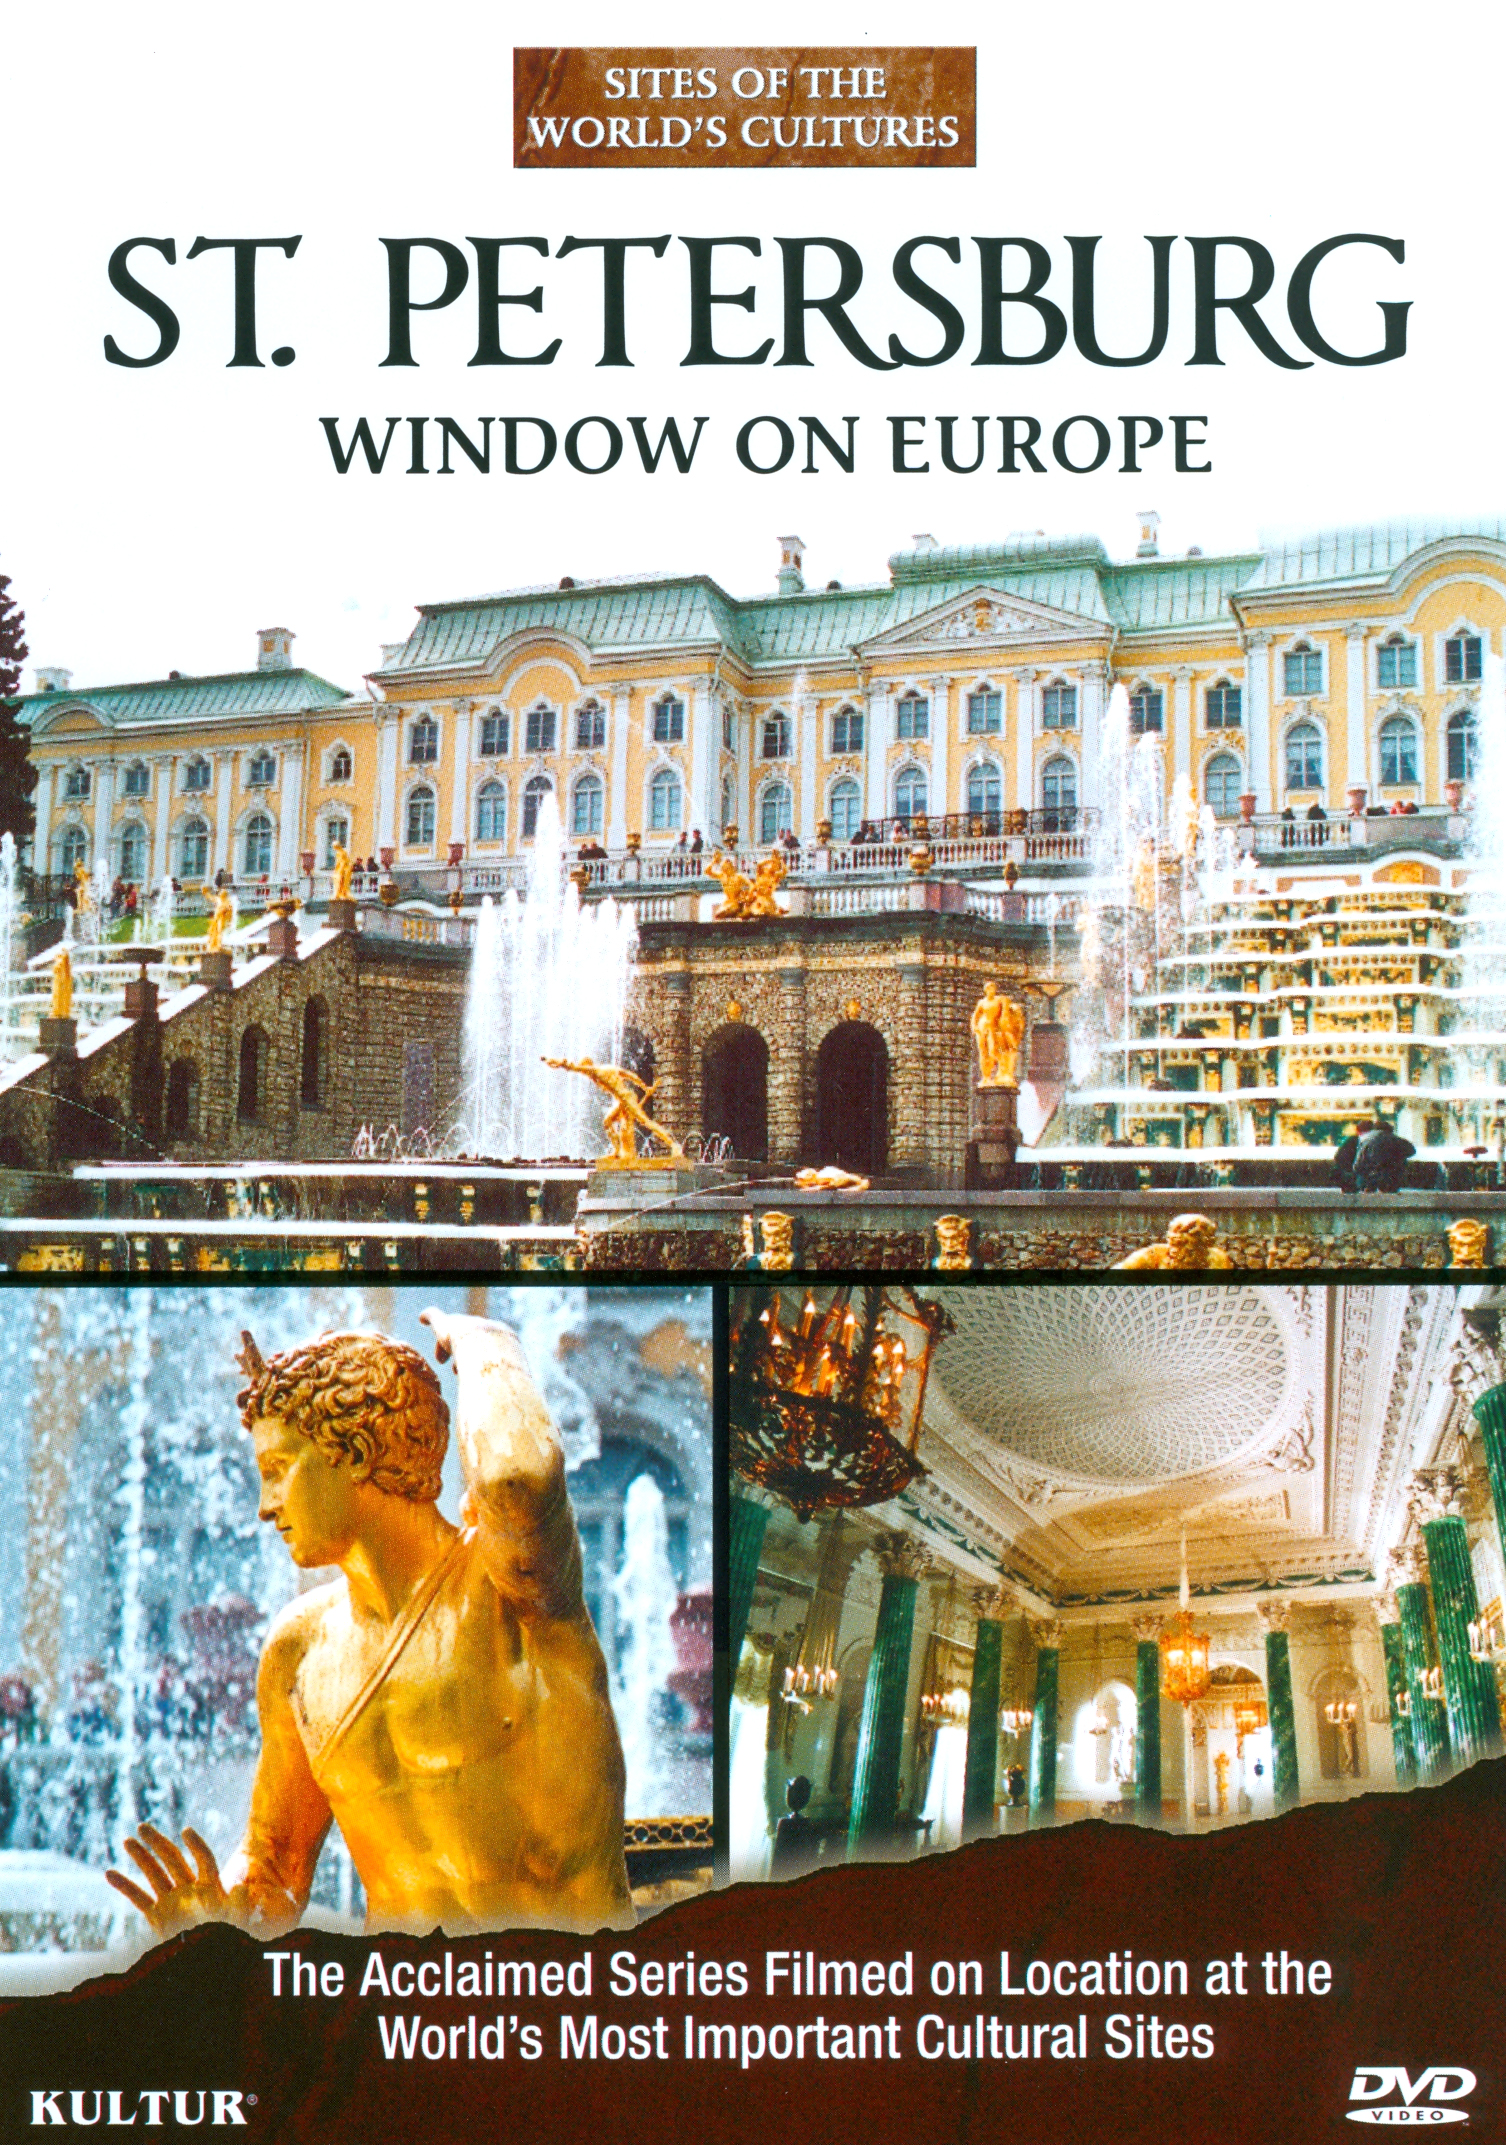 Sites of the World's Cultures: St. Petersburg - Window on Europe